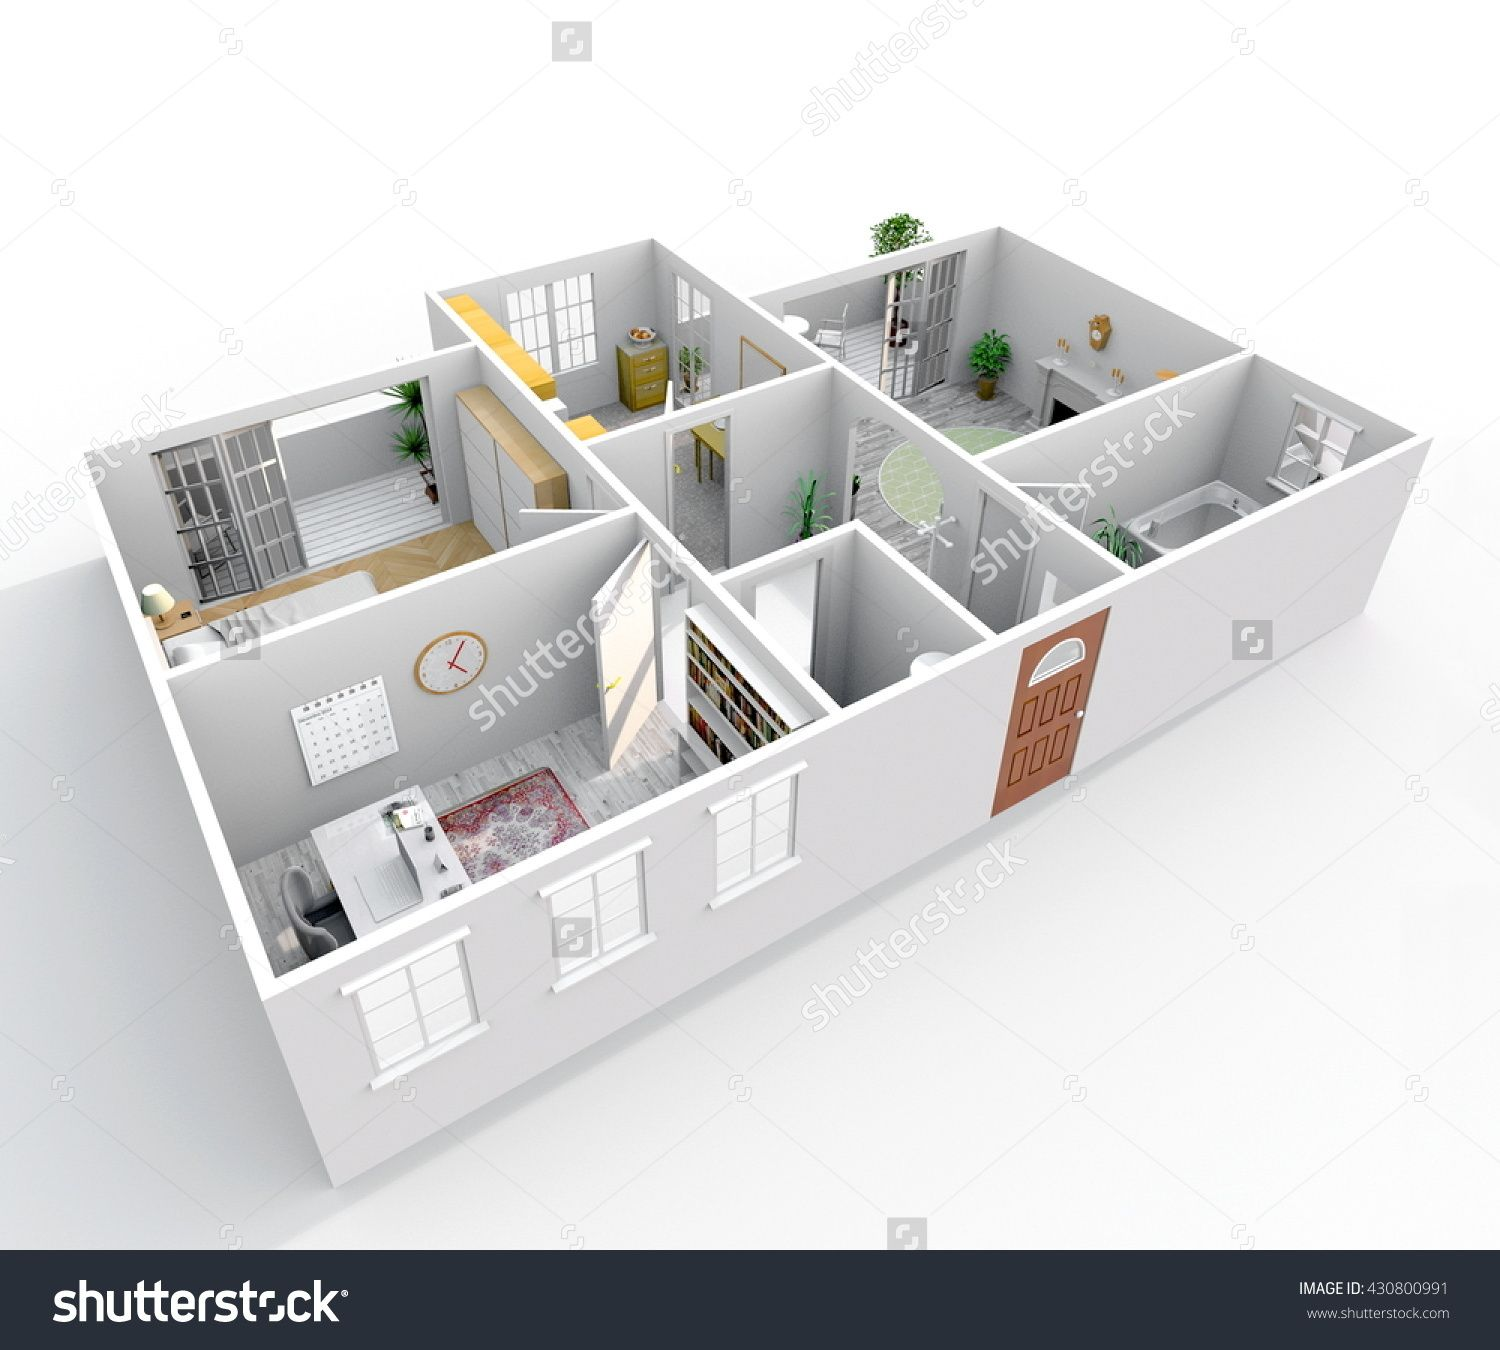 3d Interior Rendering Perspective View Of Furnished Home Apartment Room Bathroom Bedroom